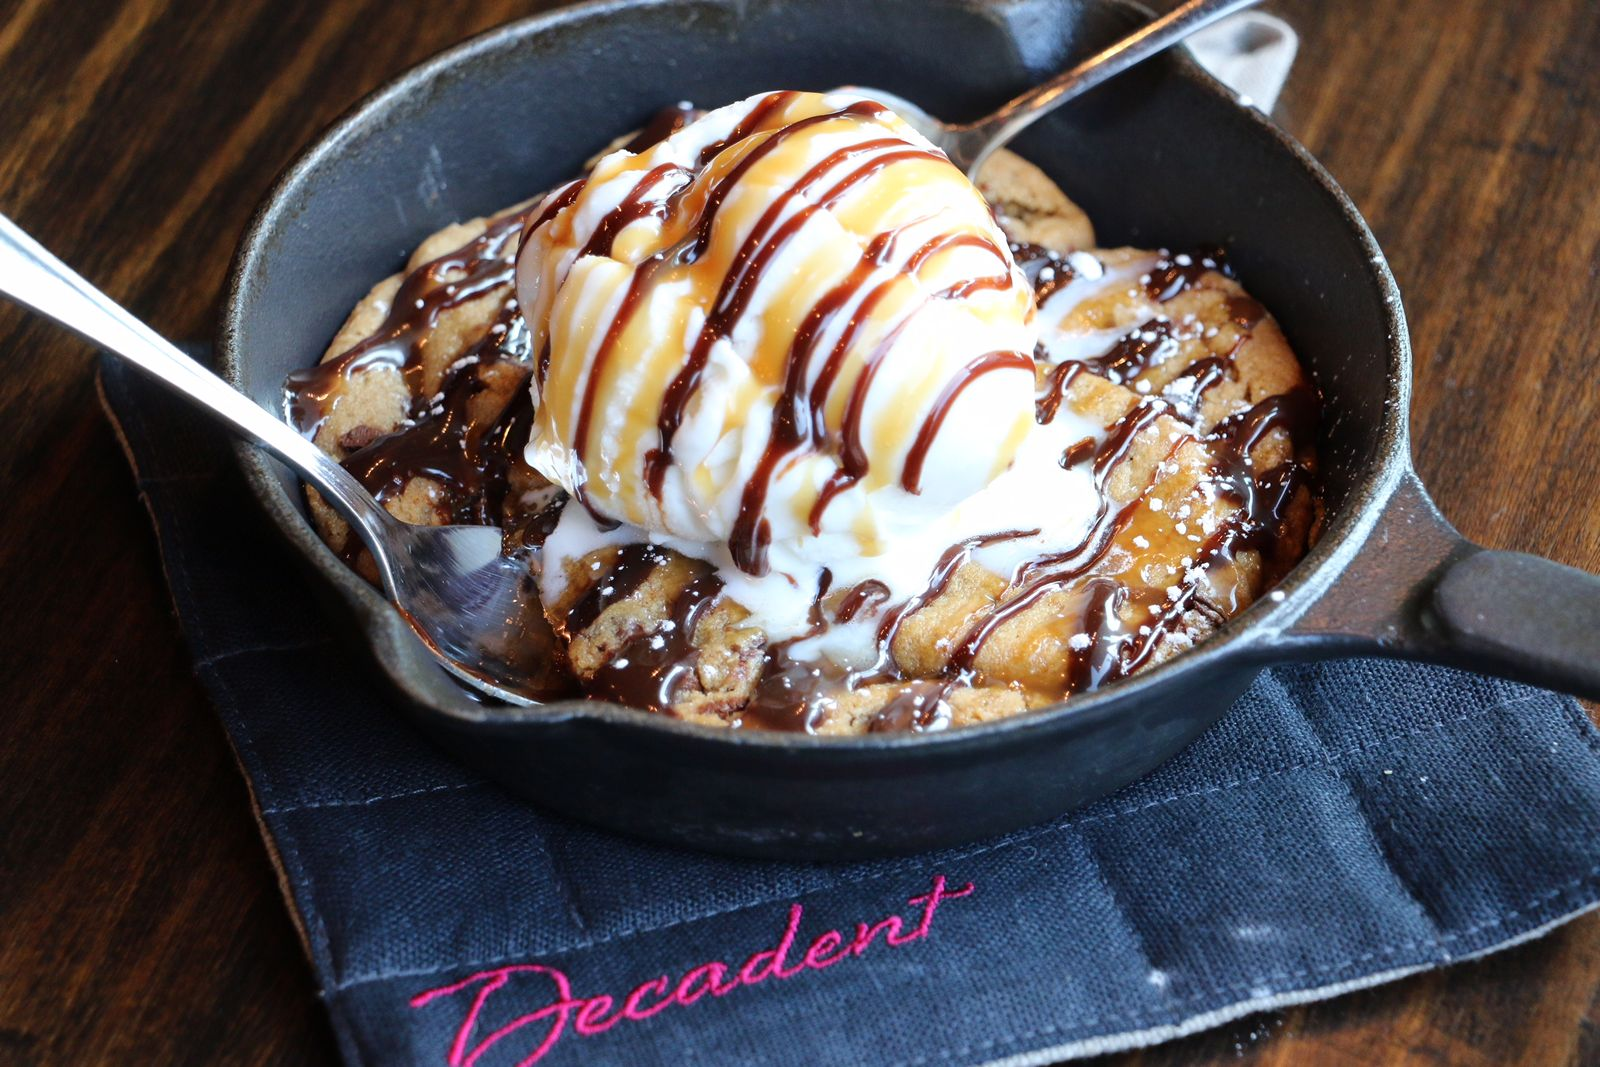 Decadent Coffee Cakes Desserts Inks Multi-Unit Deal in Florida!